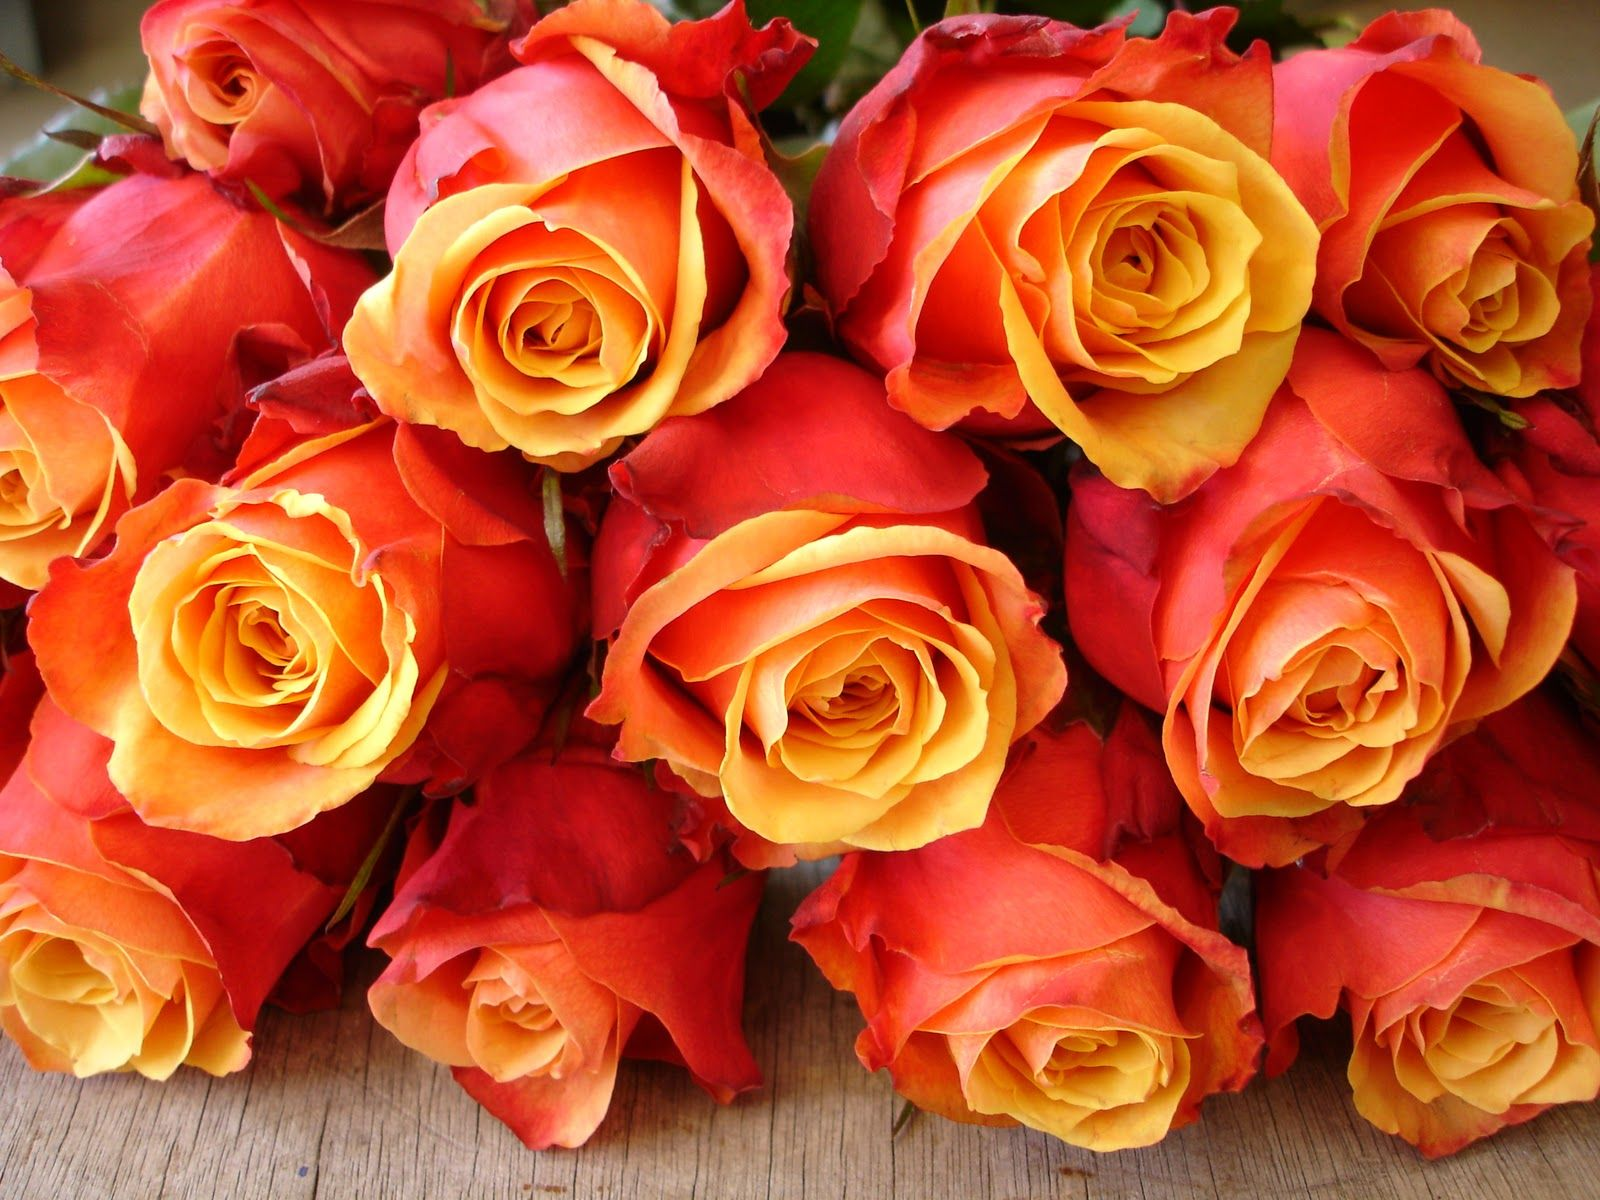 Cherry brandy roses...this is such a beautiful rose. And